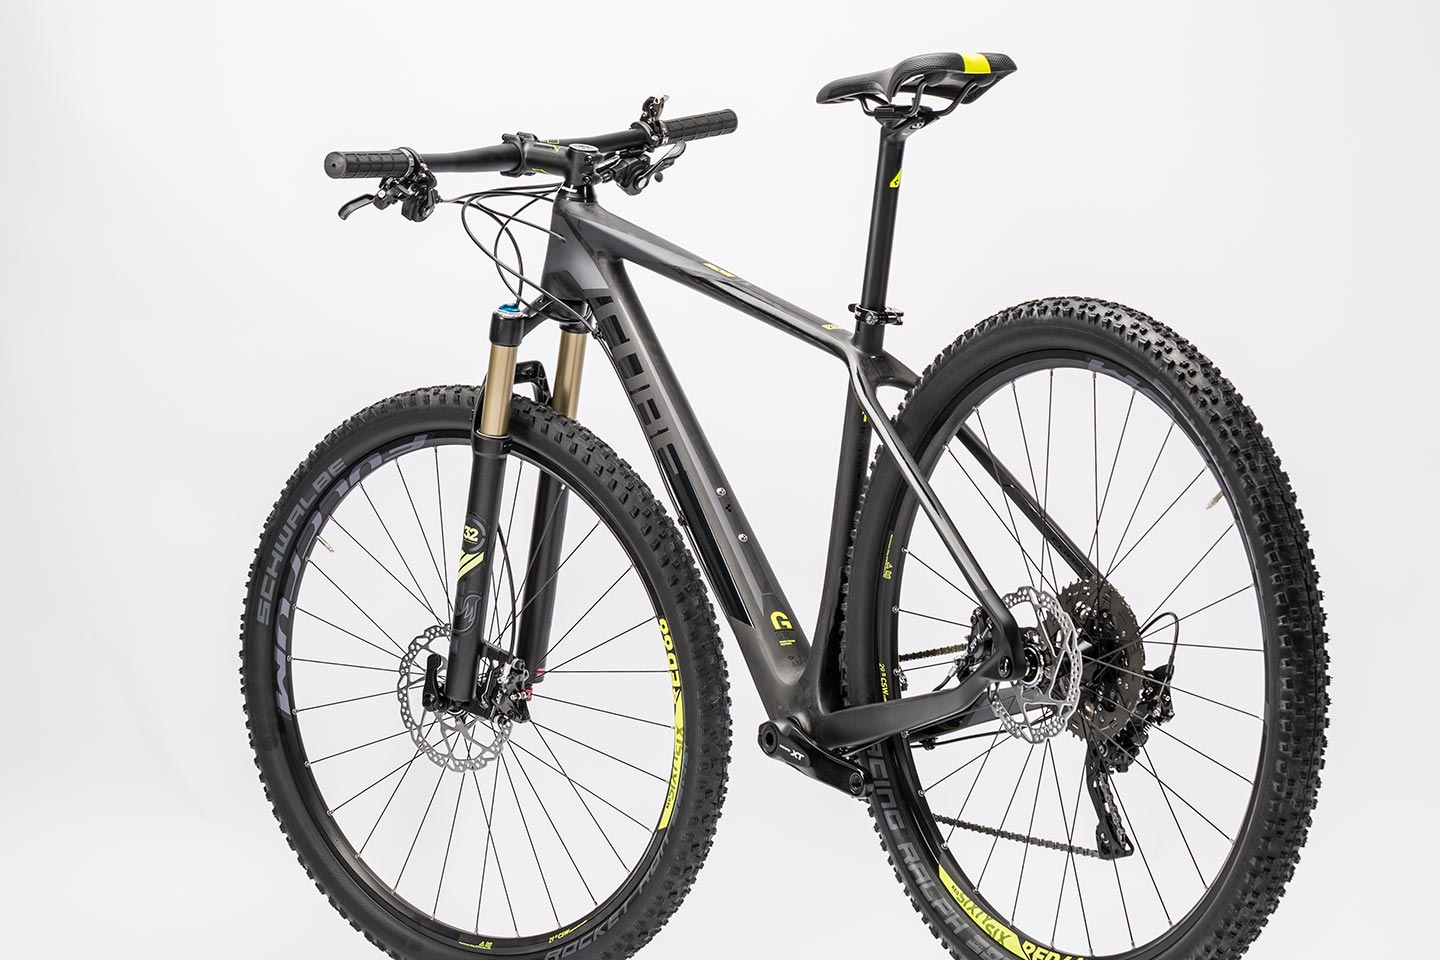 2017 Fox Racing Shox Overview Boost Options as well 11spd This Weeks Best New Bike Gear 47906 additionally merce moreover Cube Reaction Gtc Sl 2x Carbonnflashyellow 2016 moreover Colnago Cf12 Ferrari Edition Bike. on bike wheel and axle